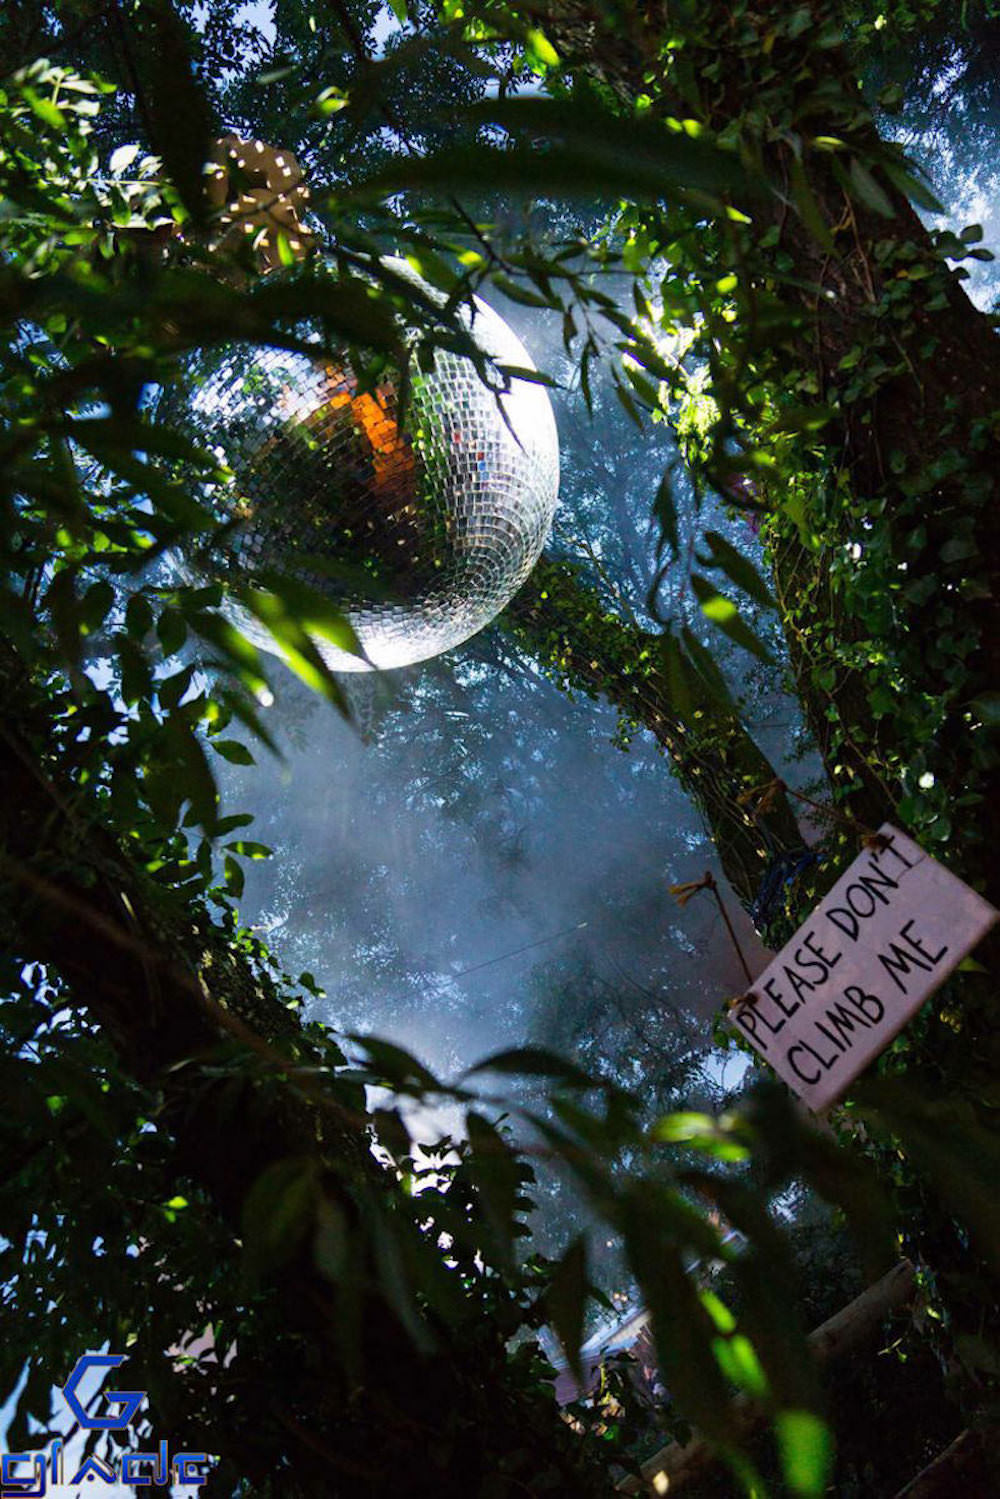 The spike stage glitter ball at Glastonbury Festival